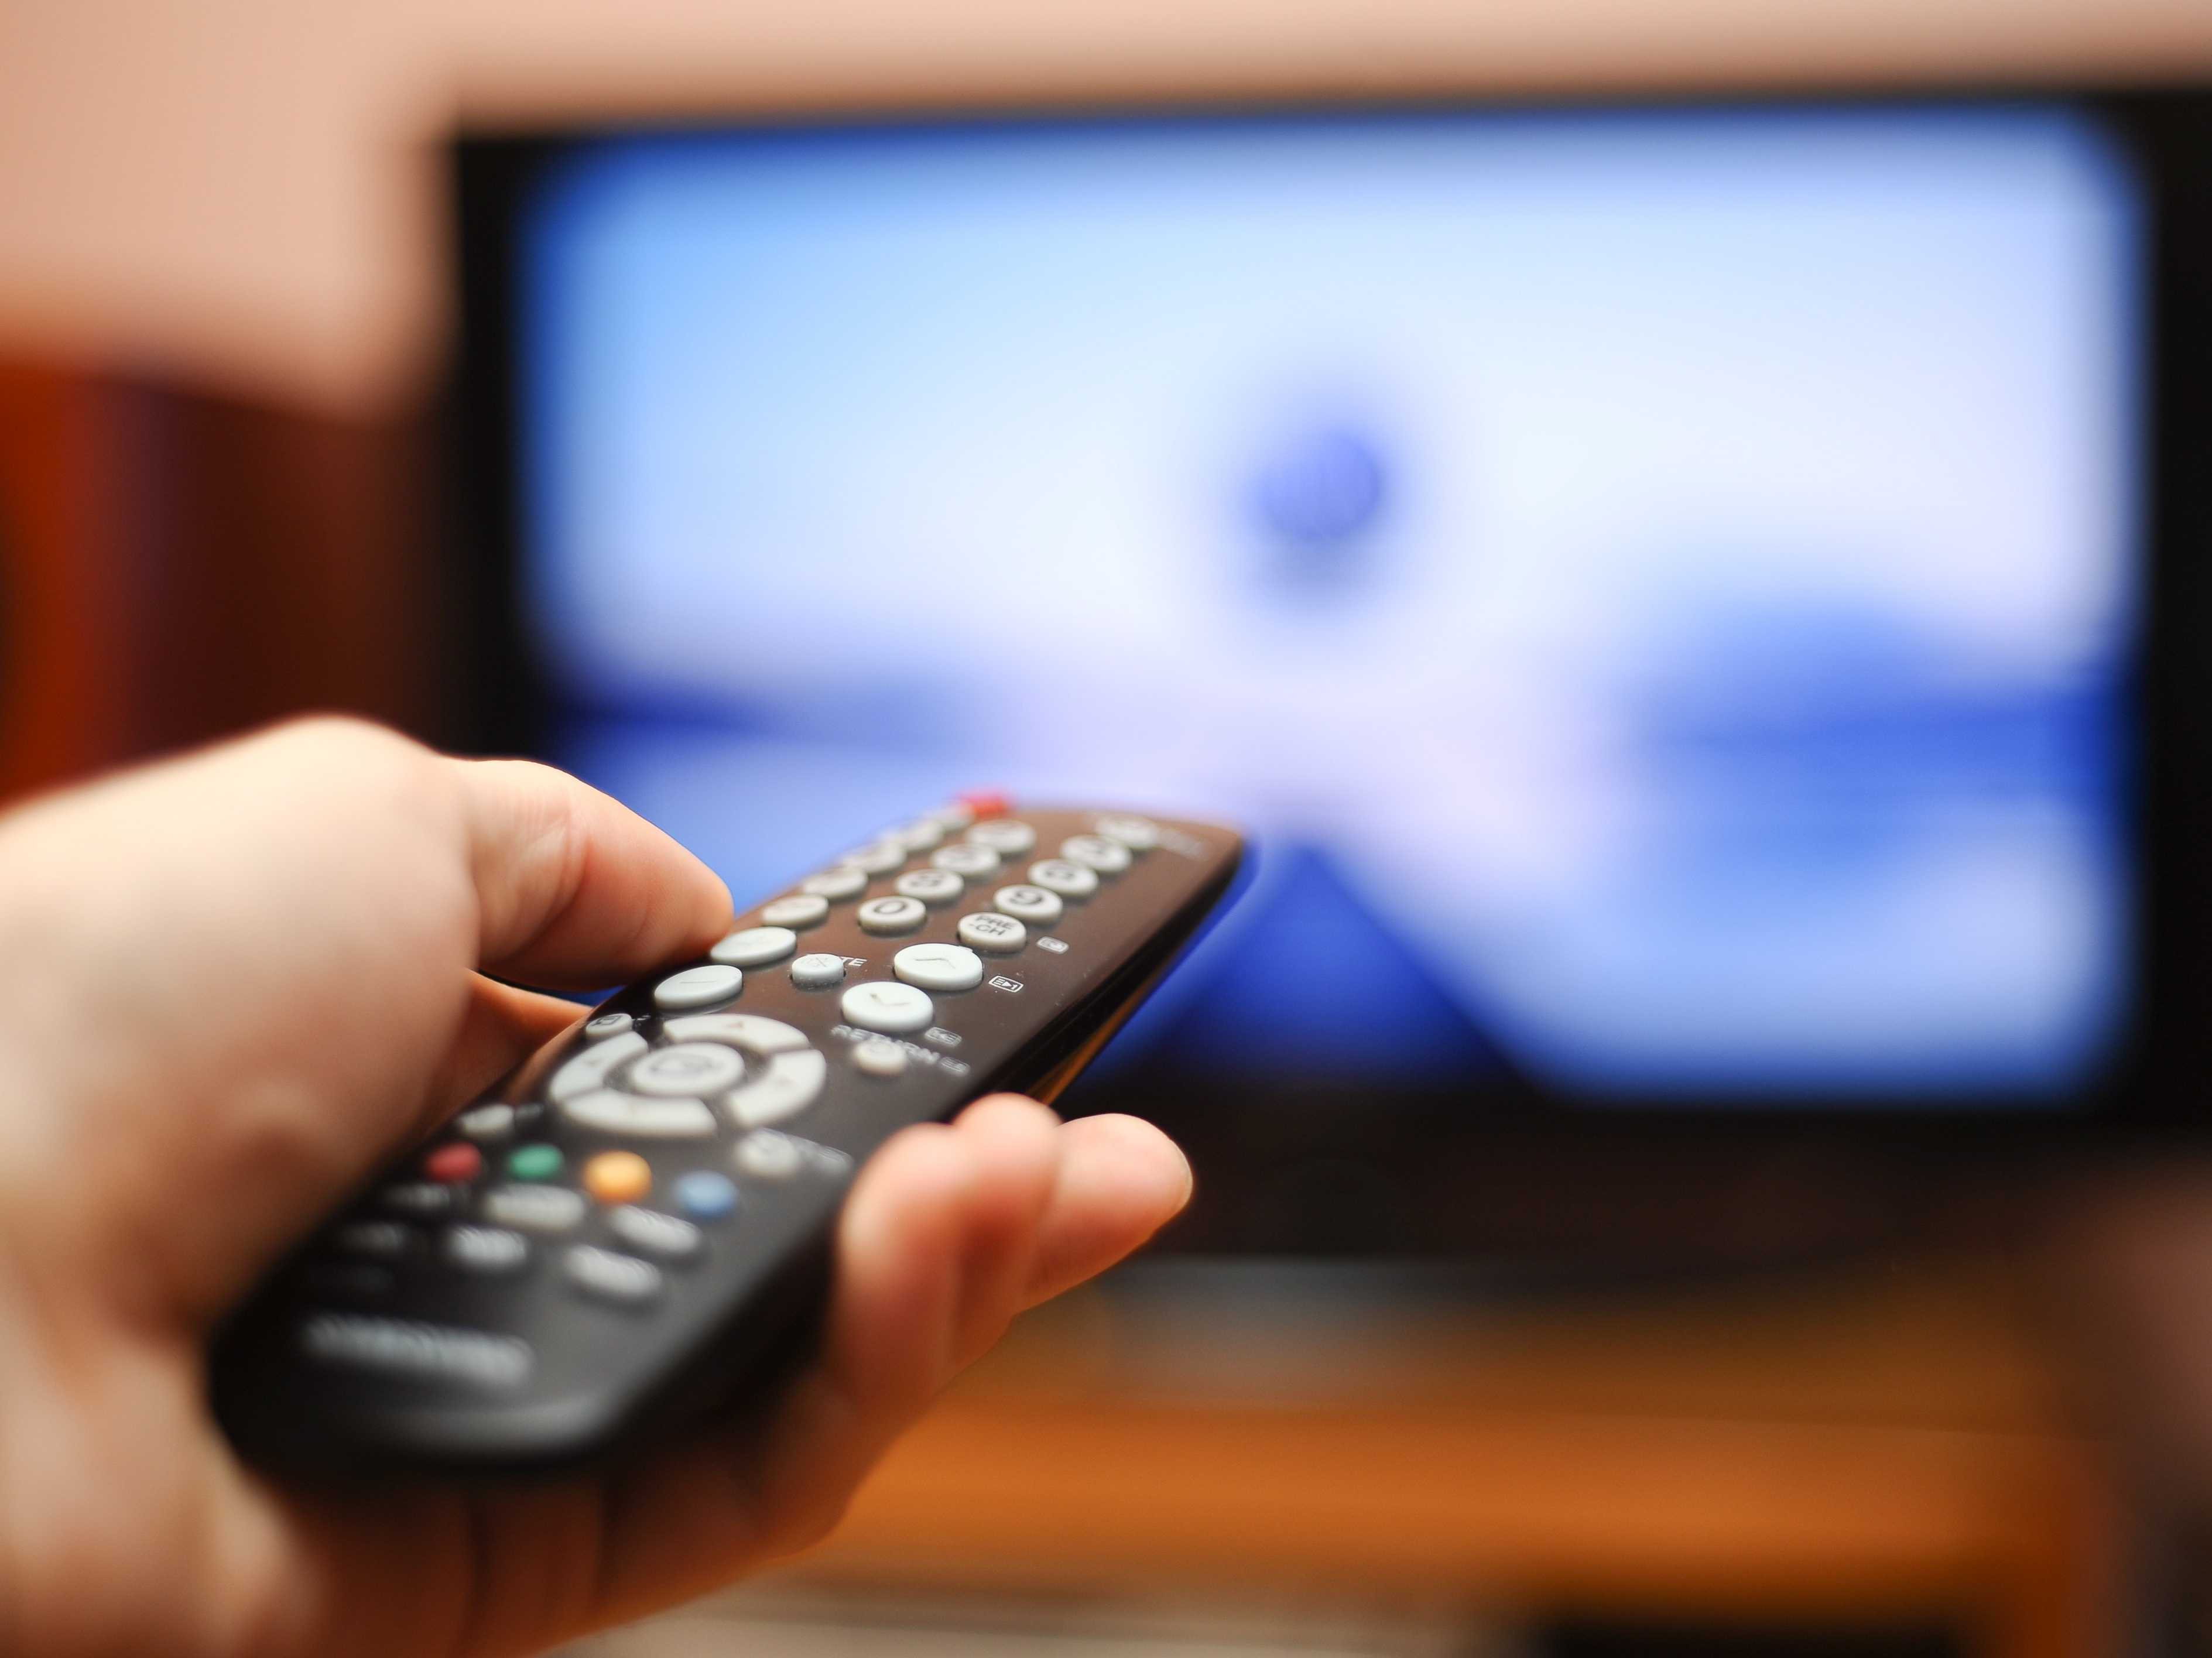 hand holding TV remote in front of blurred out TV screen showing a TV ad